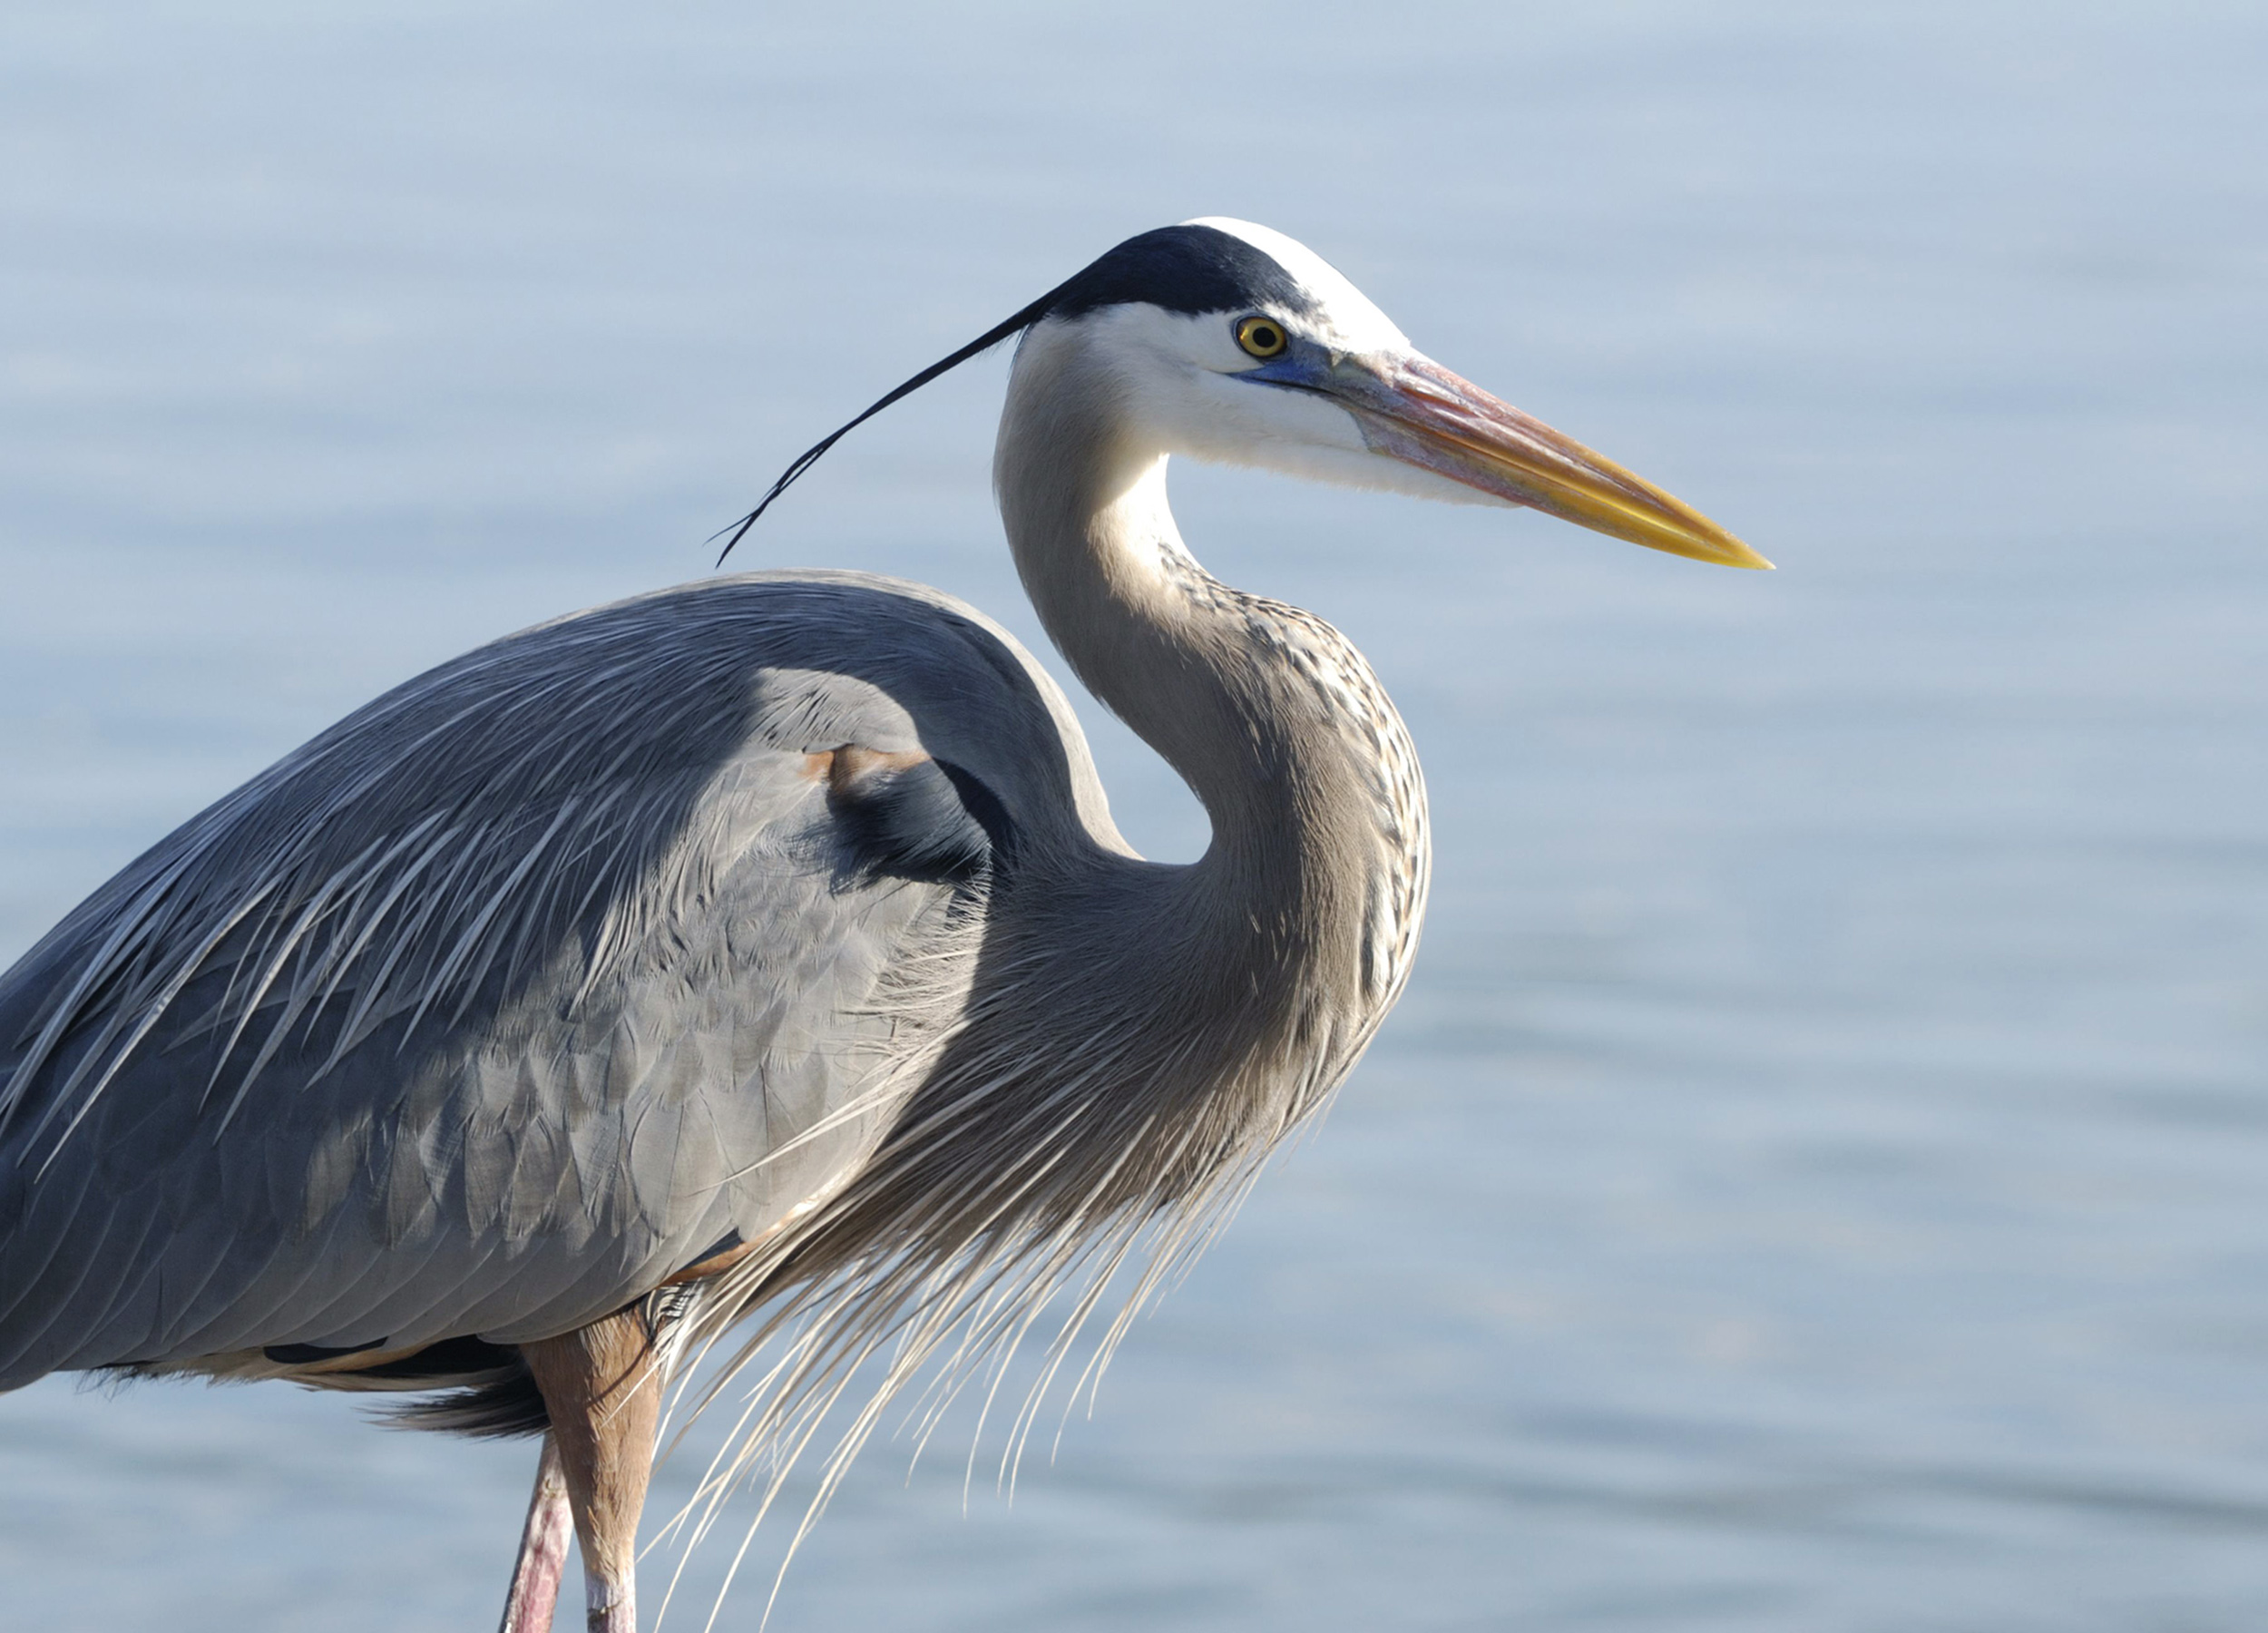 Close up of a great blue heron standing in water at the Sian Ka'an Biosphere Reserve